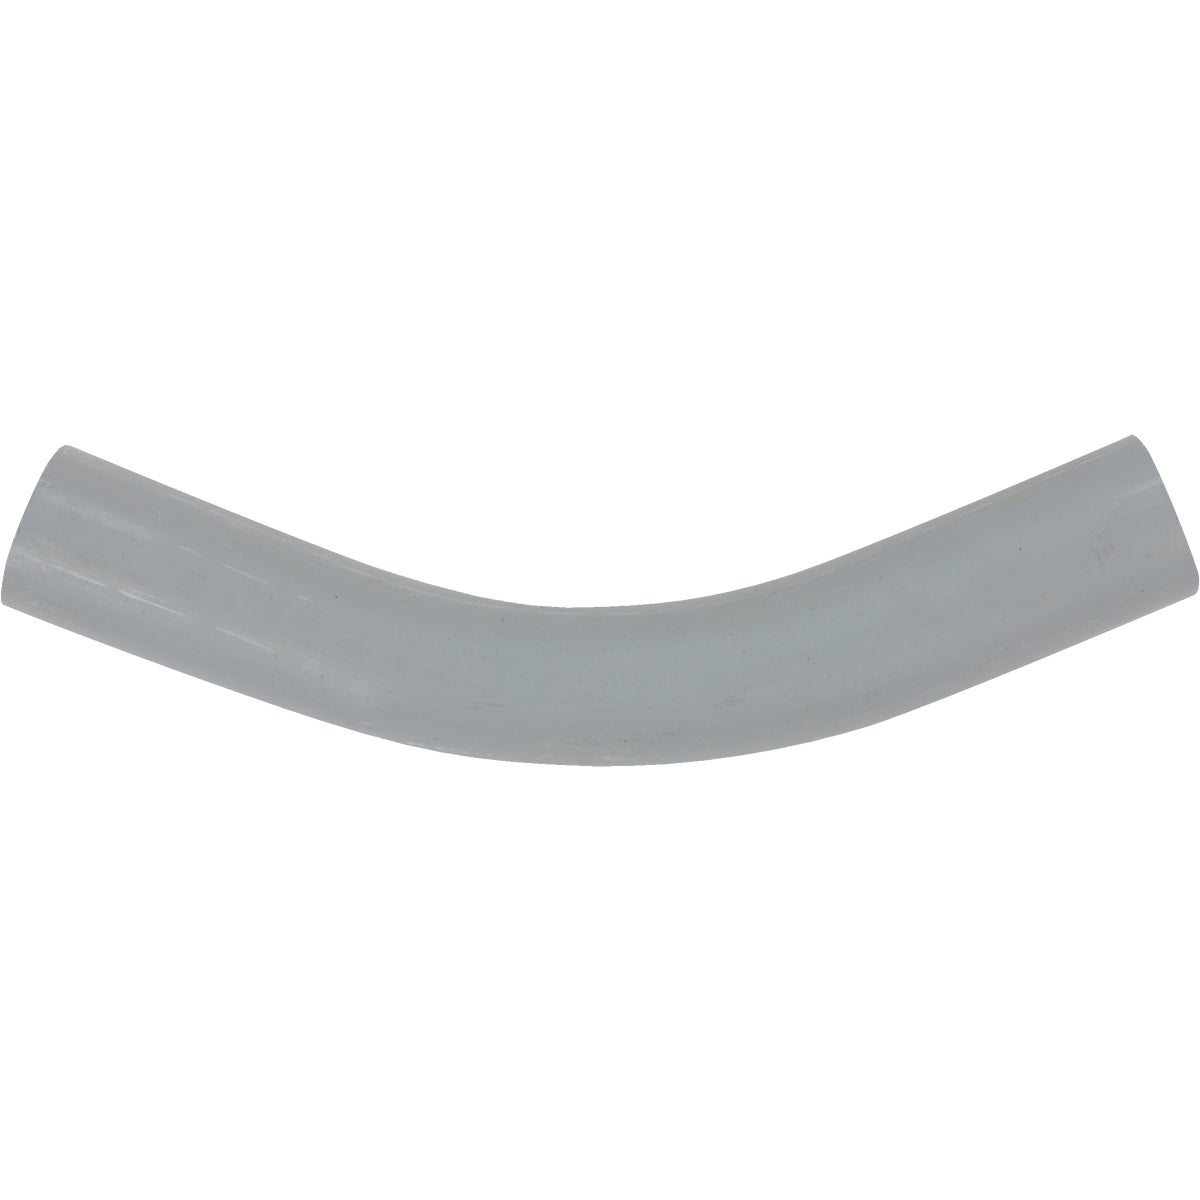 "1-1/4"" PVC ELBOW - UA7AGRCTN by Thomas & Betts"